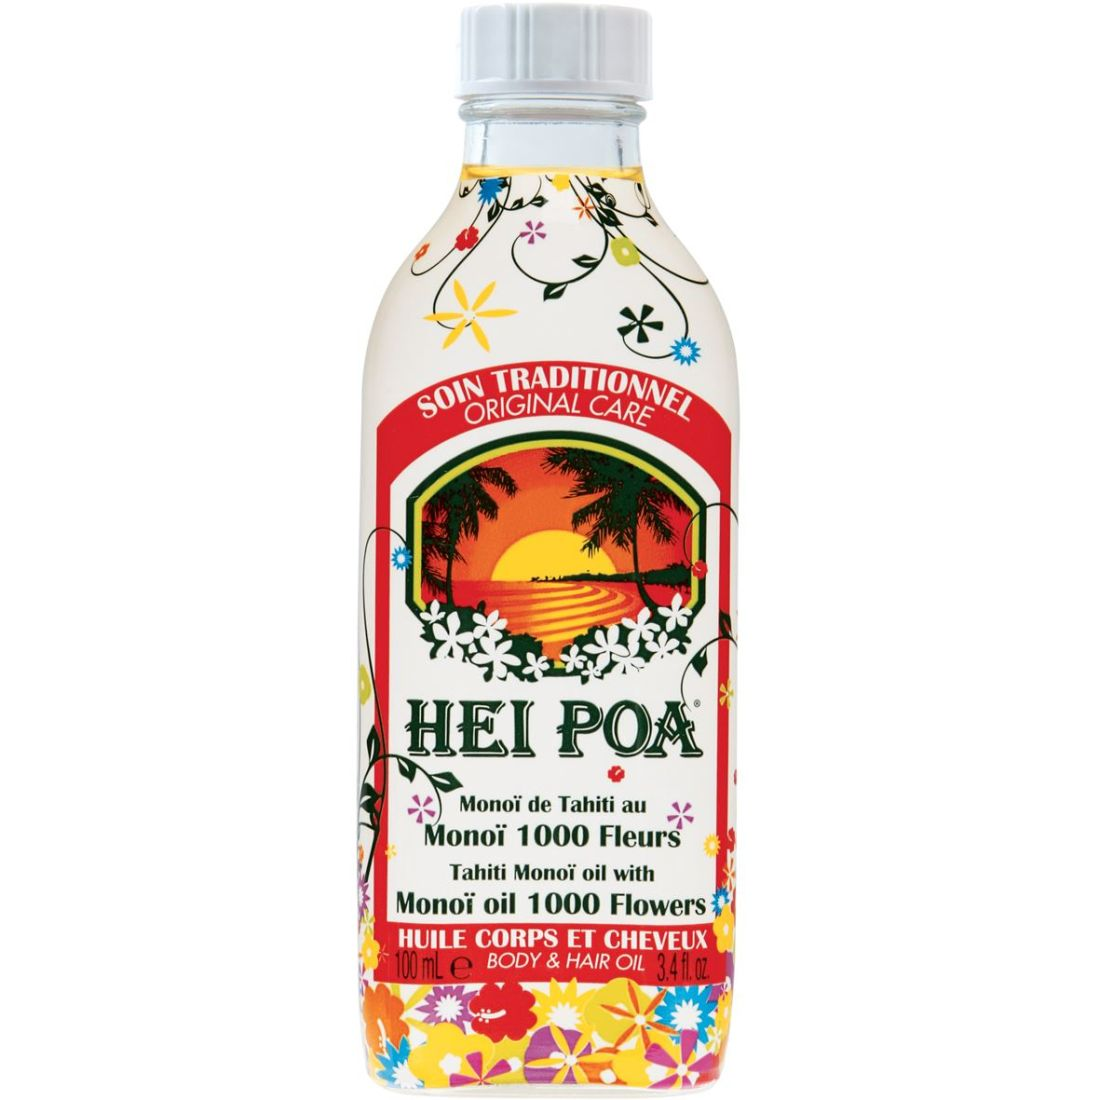 Hei Poa Pure Tahiti Monoi Oil 1000 Flowers 100ml